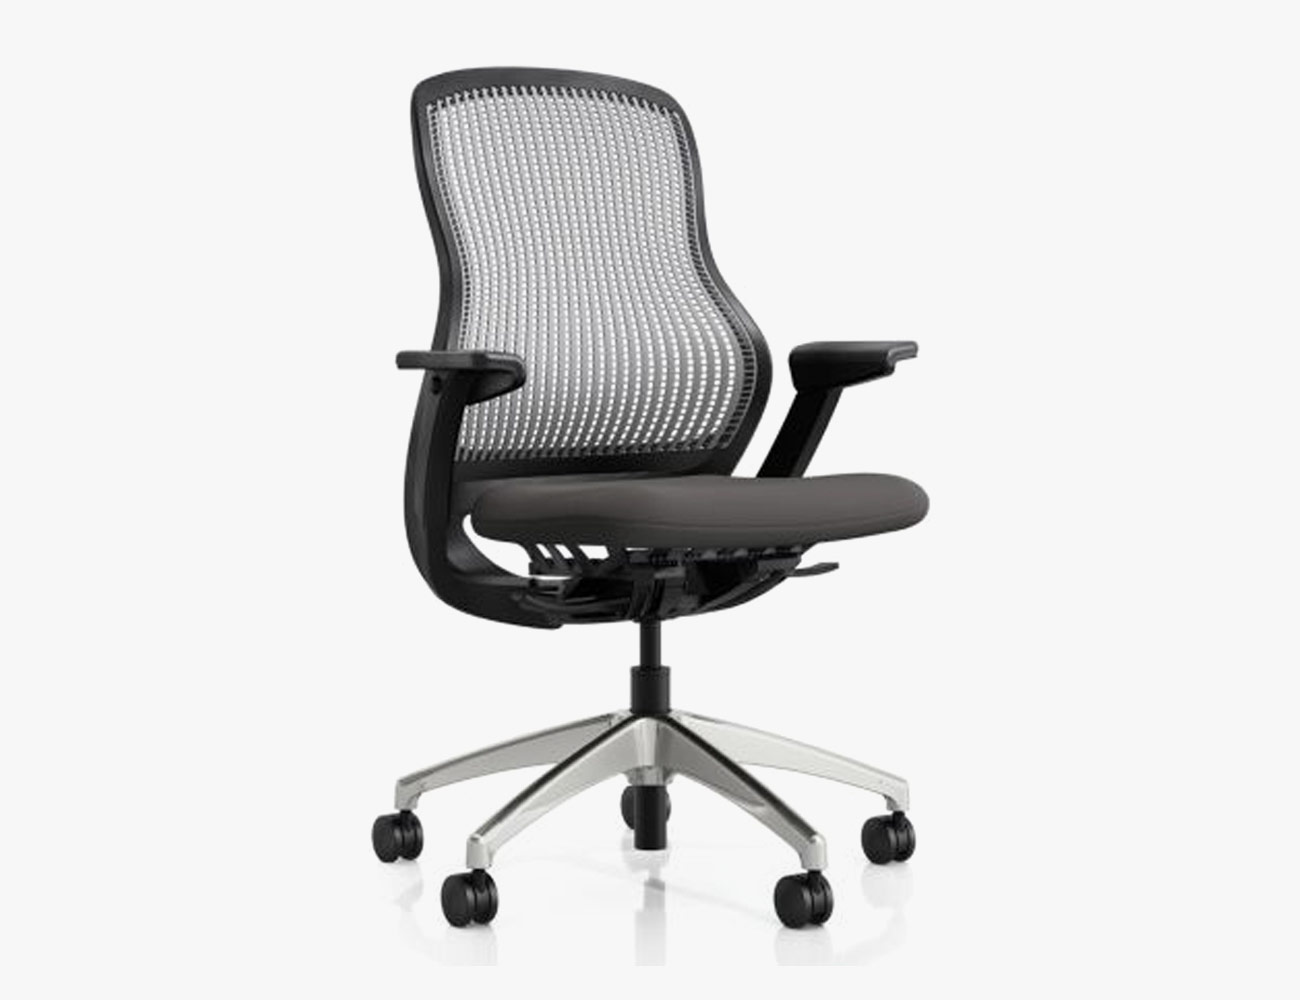 Best All-Around Office Chair: Knoll ReGeneration